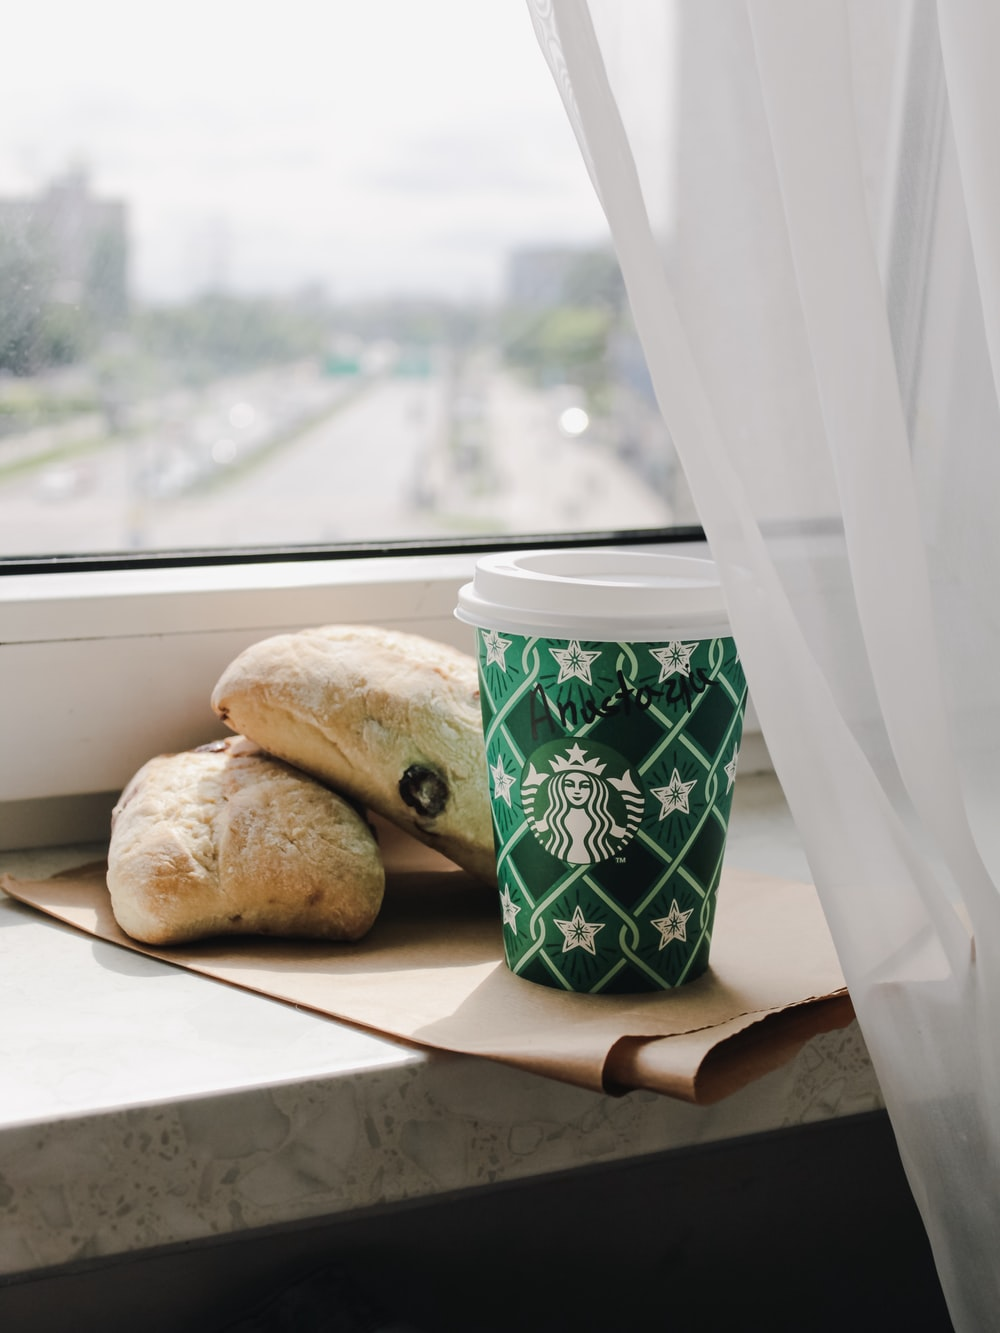 green Starbucks disposable cup near two breads